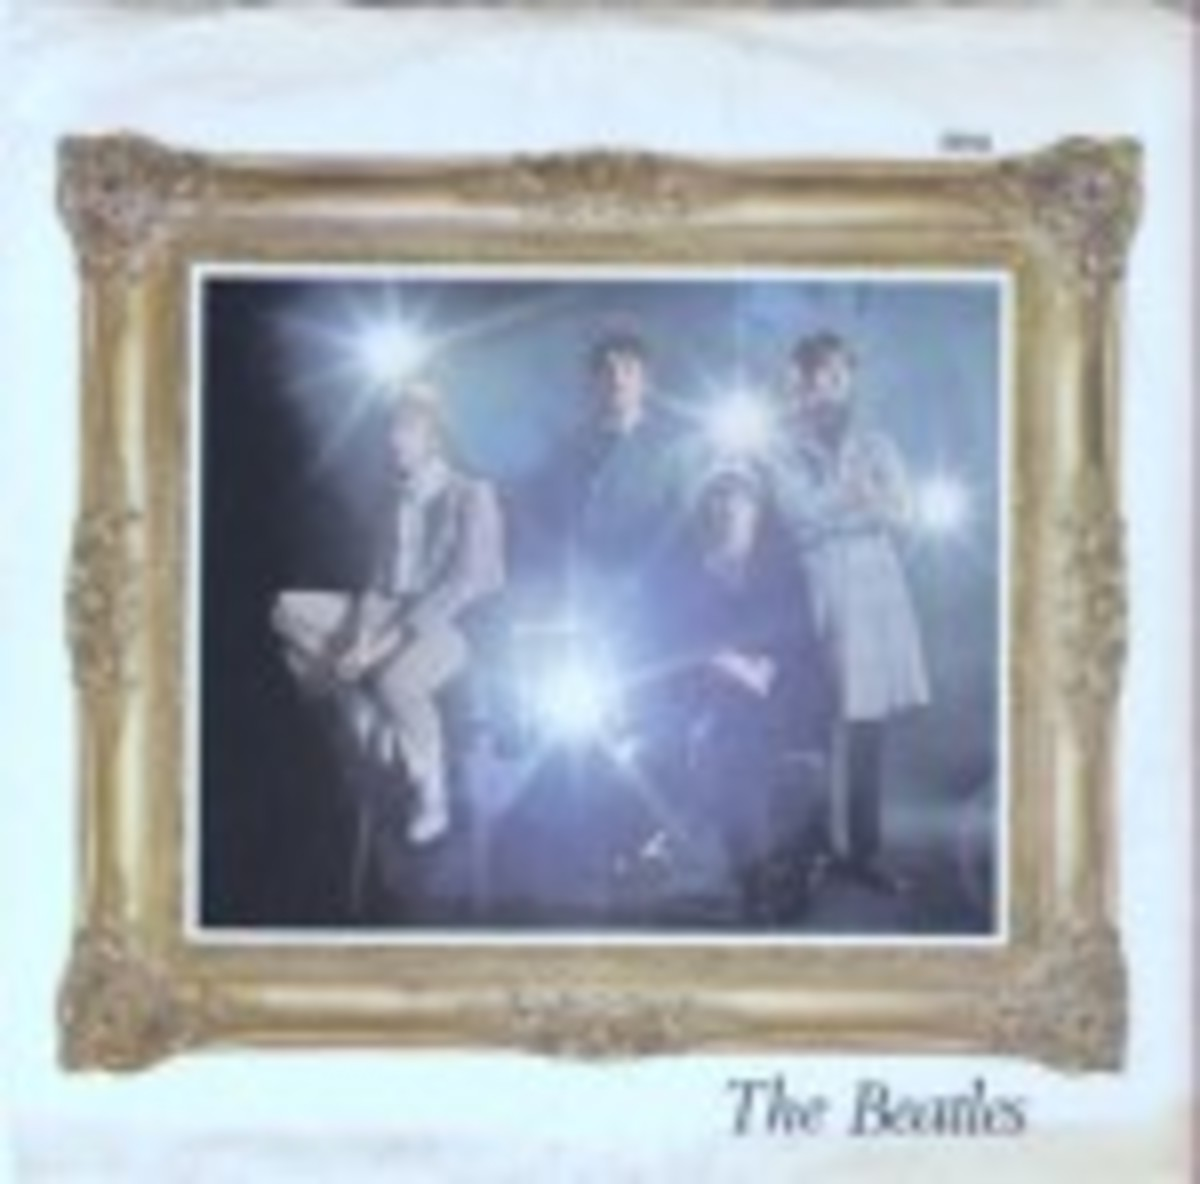 The Beatles Strawberry Fields Penny Lane picture sleeve